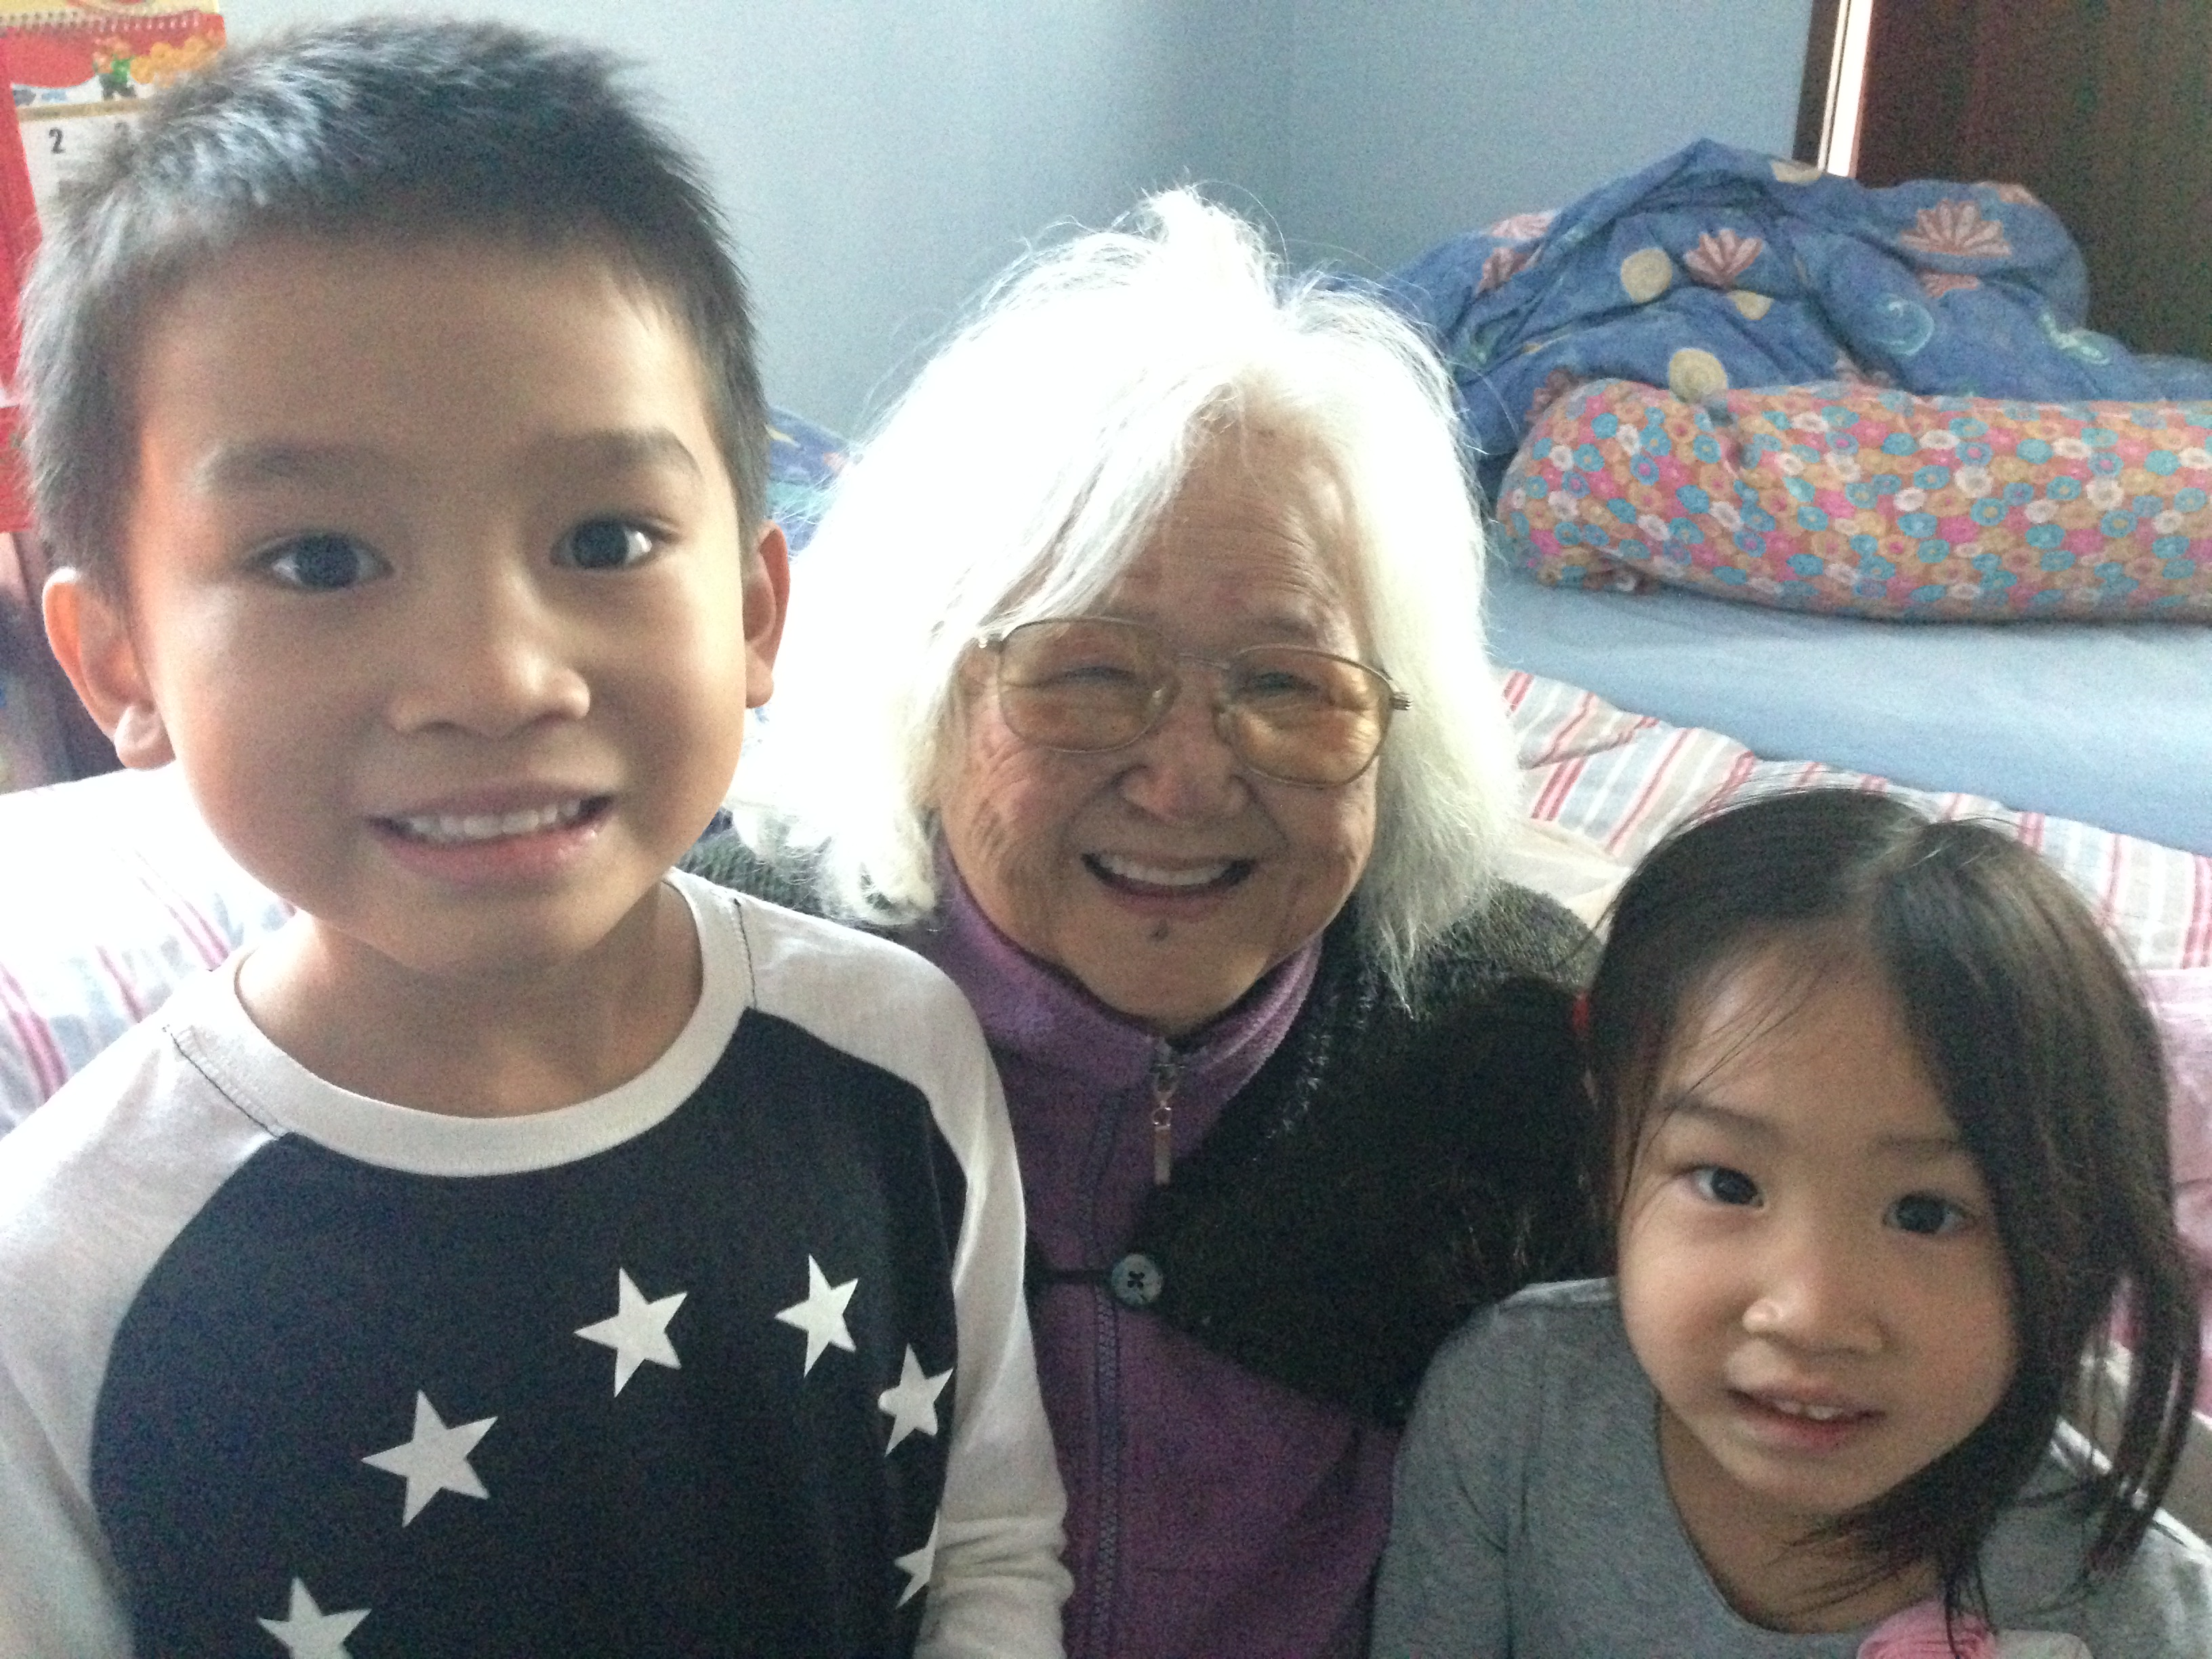 CaregiverAsia builds a community of care and caregivers to help the Elderly live with dignity